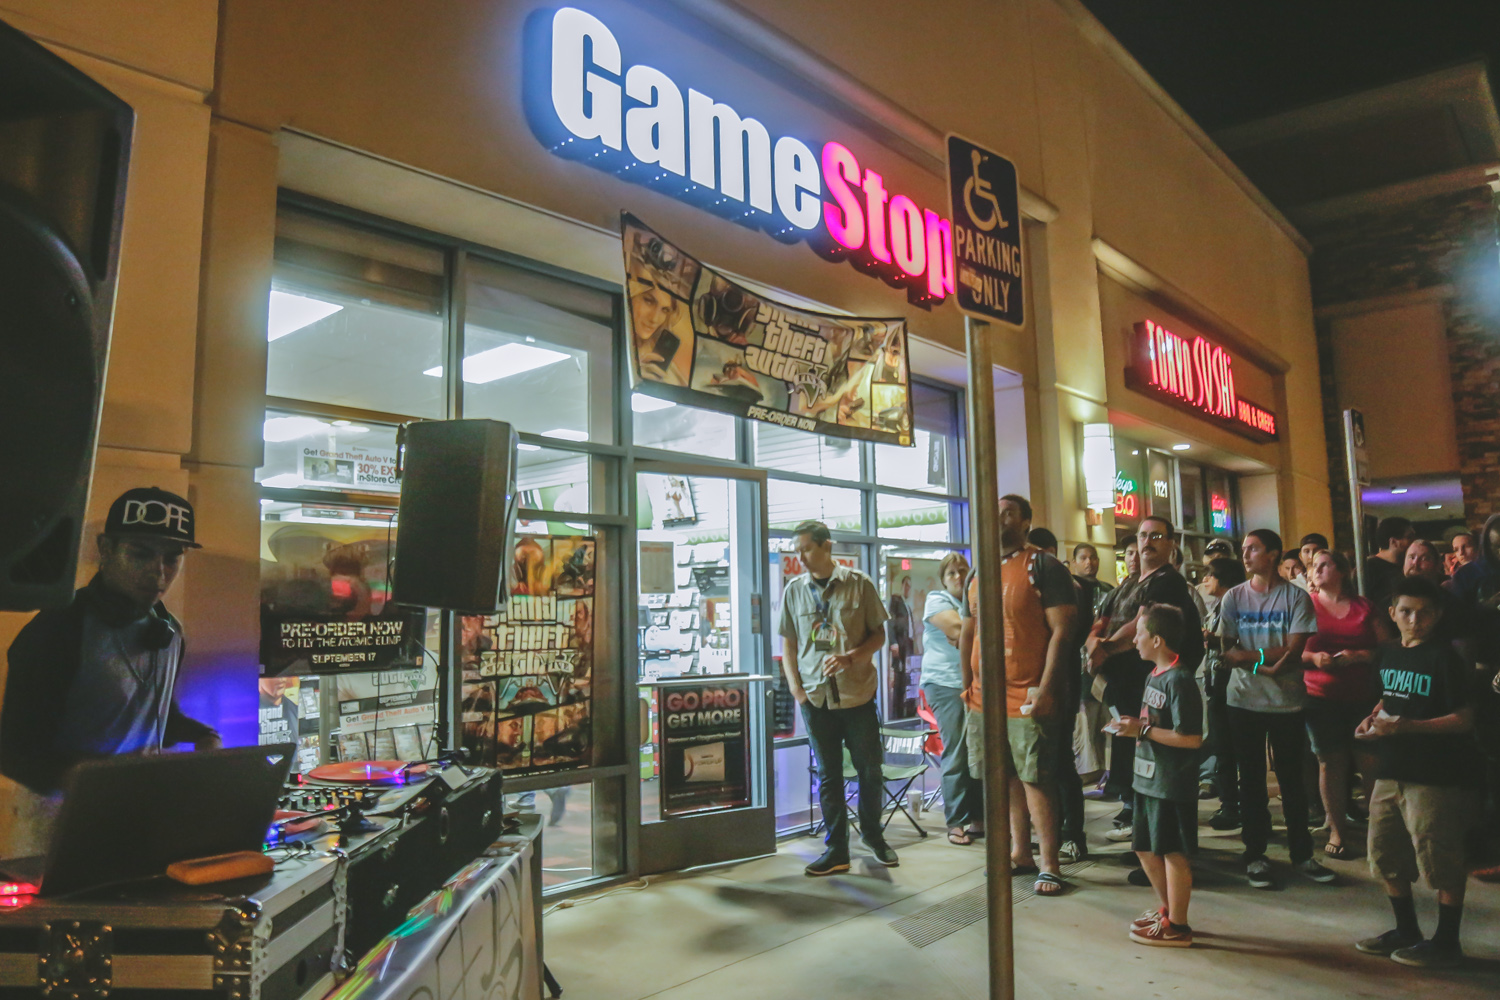 DJin at Game Stop for the release of GTA V